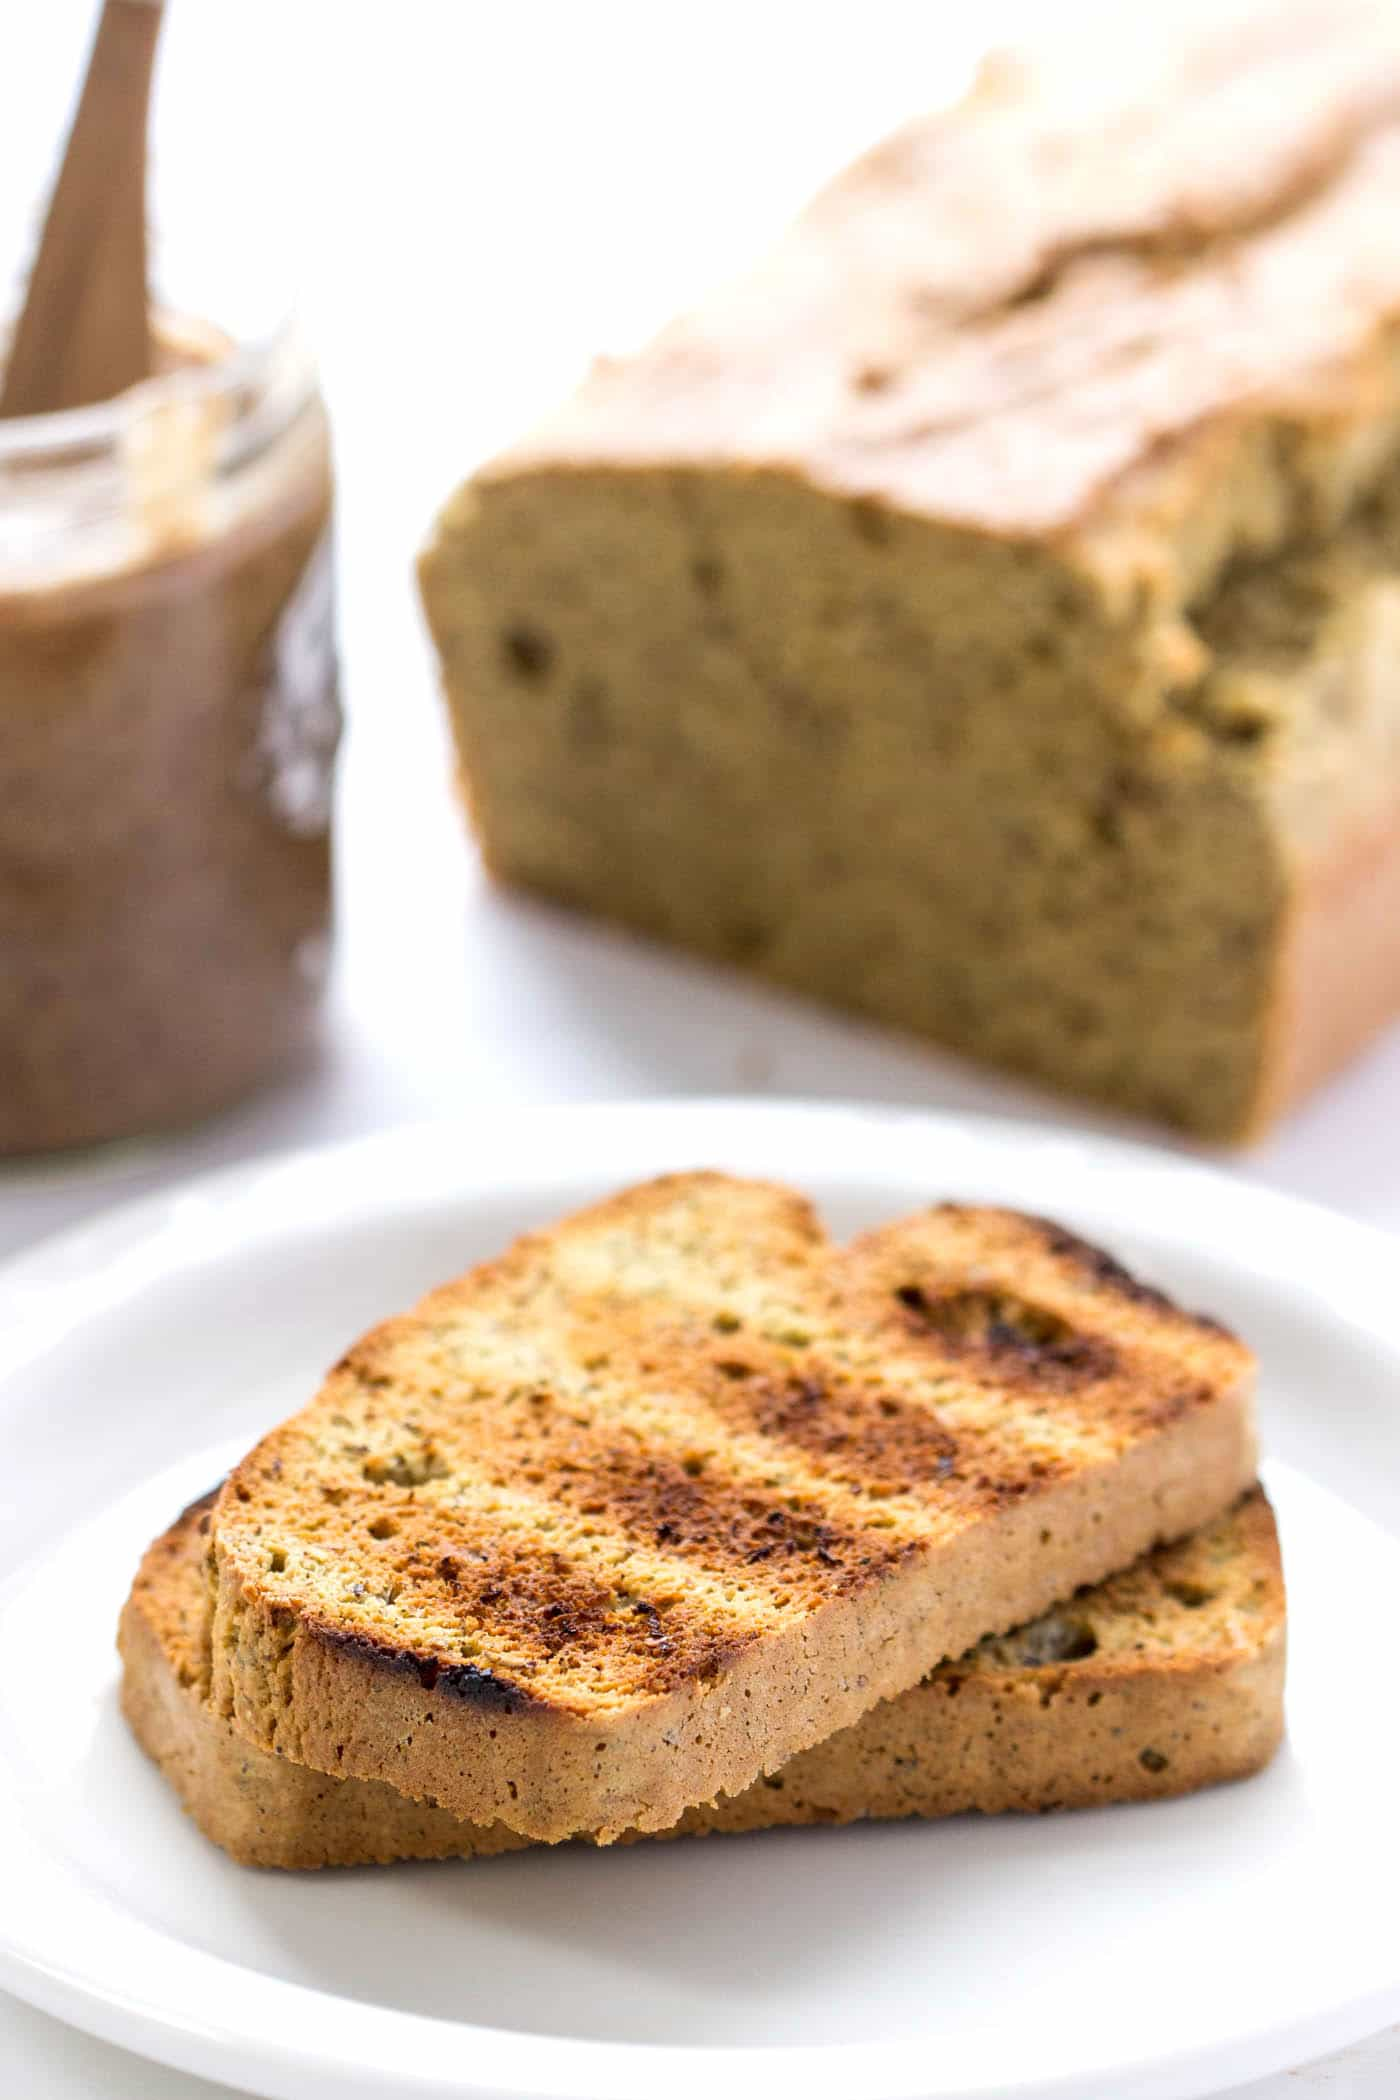 This gluten-free almond flour bread is AMAZING! It uses quinoa, almonds and other healthy goodies and makes the best toast!